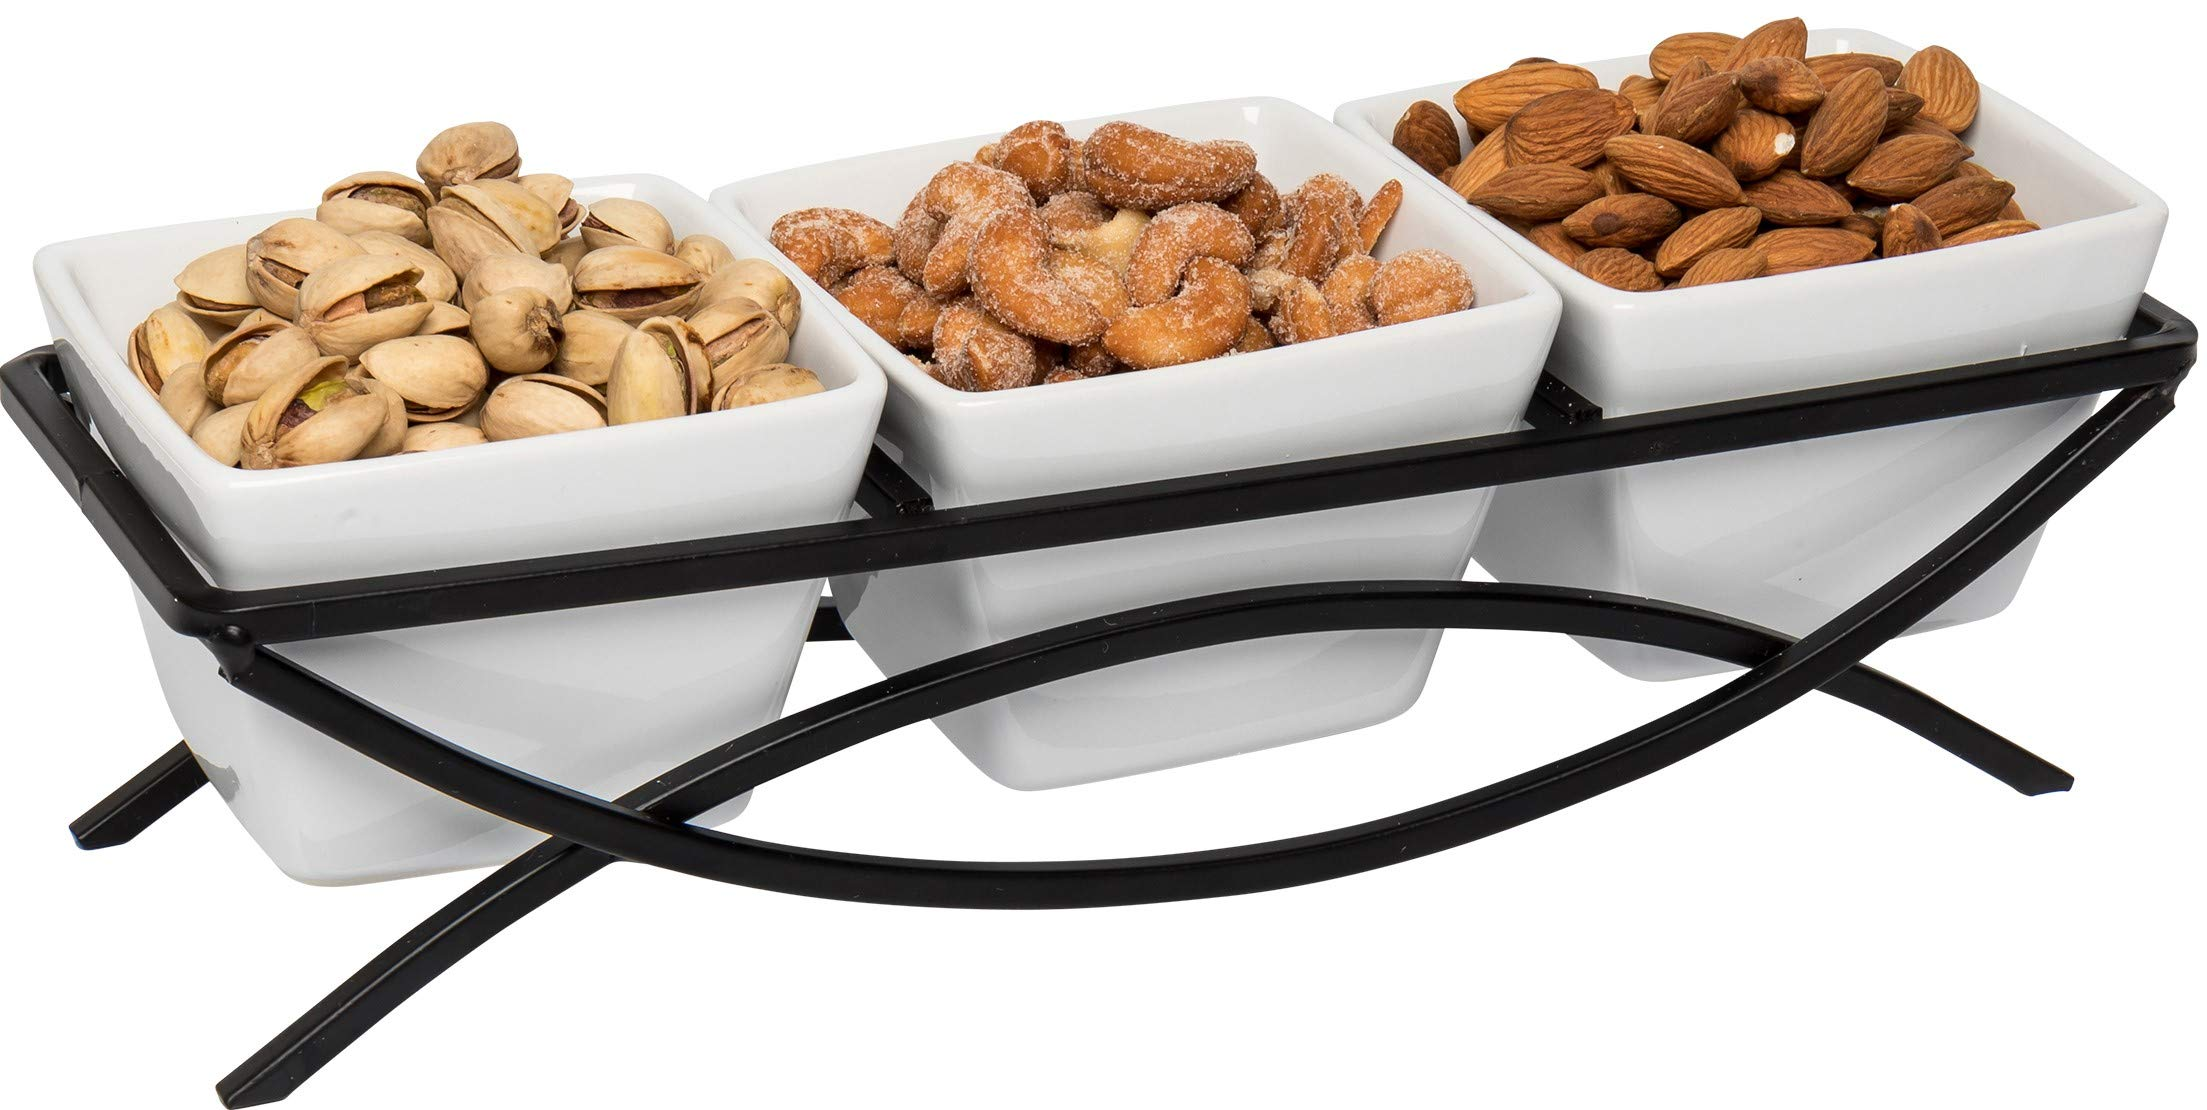 Food Serving Bowl Set: Decorative Metal Display Stand with 3 White Stoneware Bowls | Perfect for Condiments, Appetizers, Nuts, and Snacks